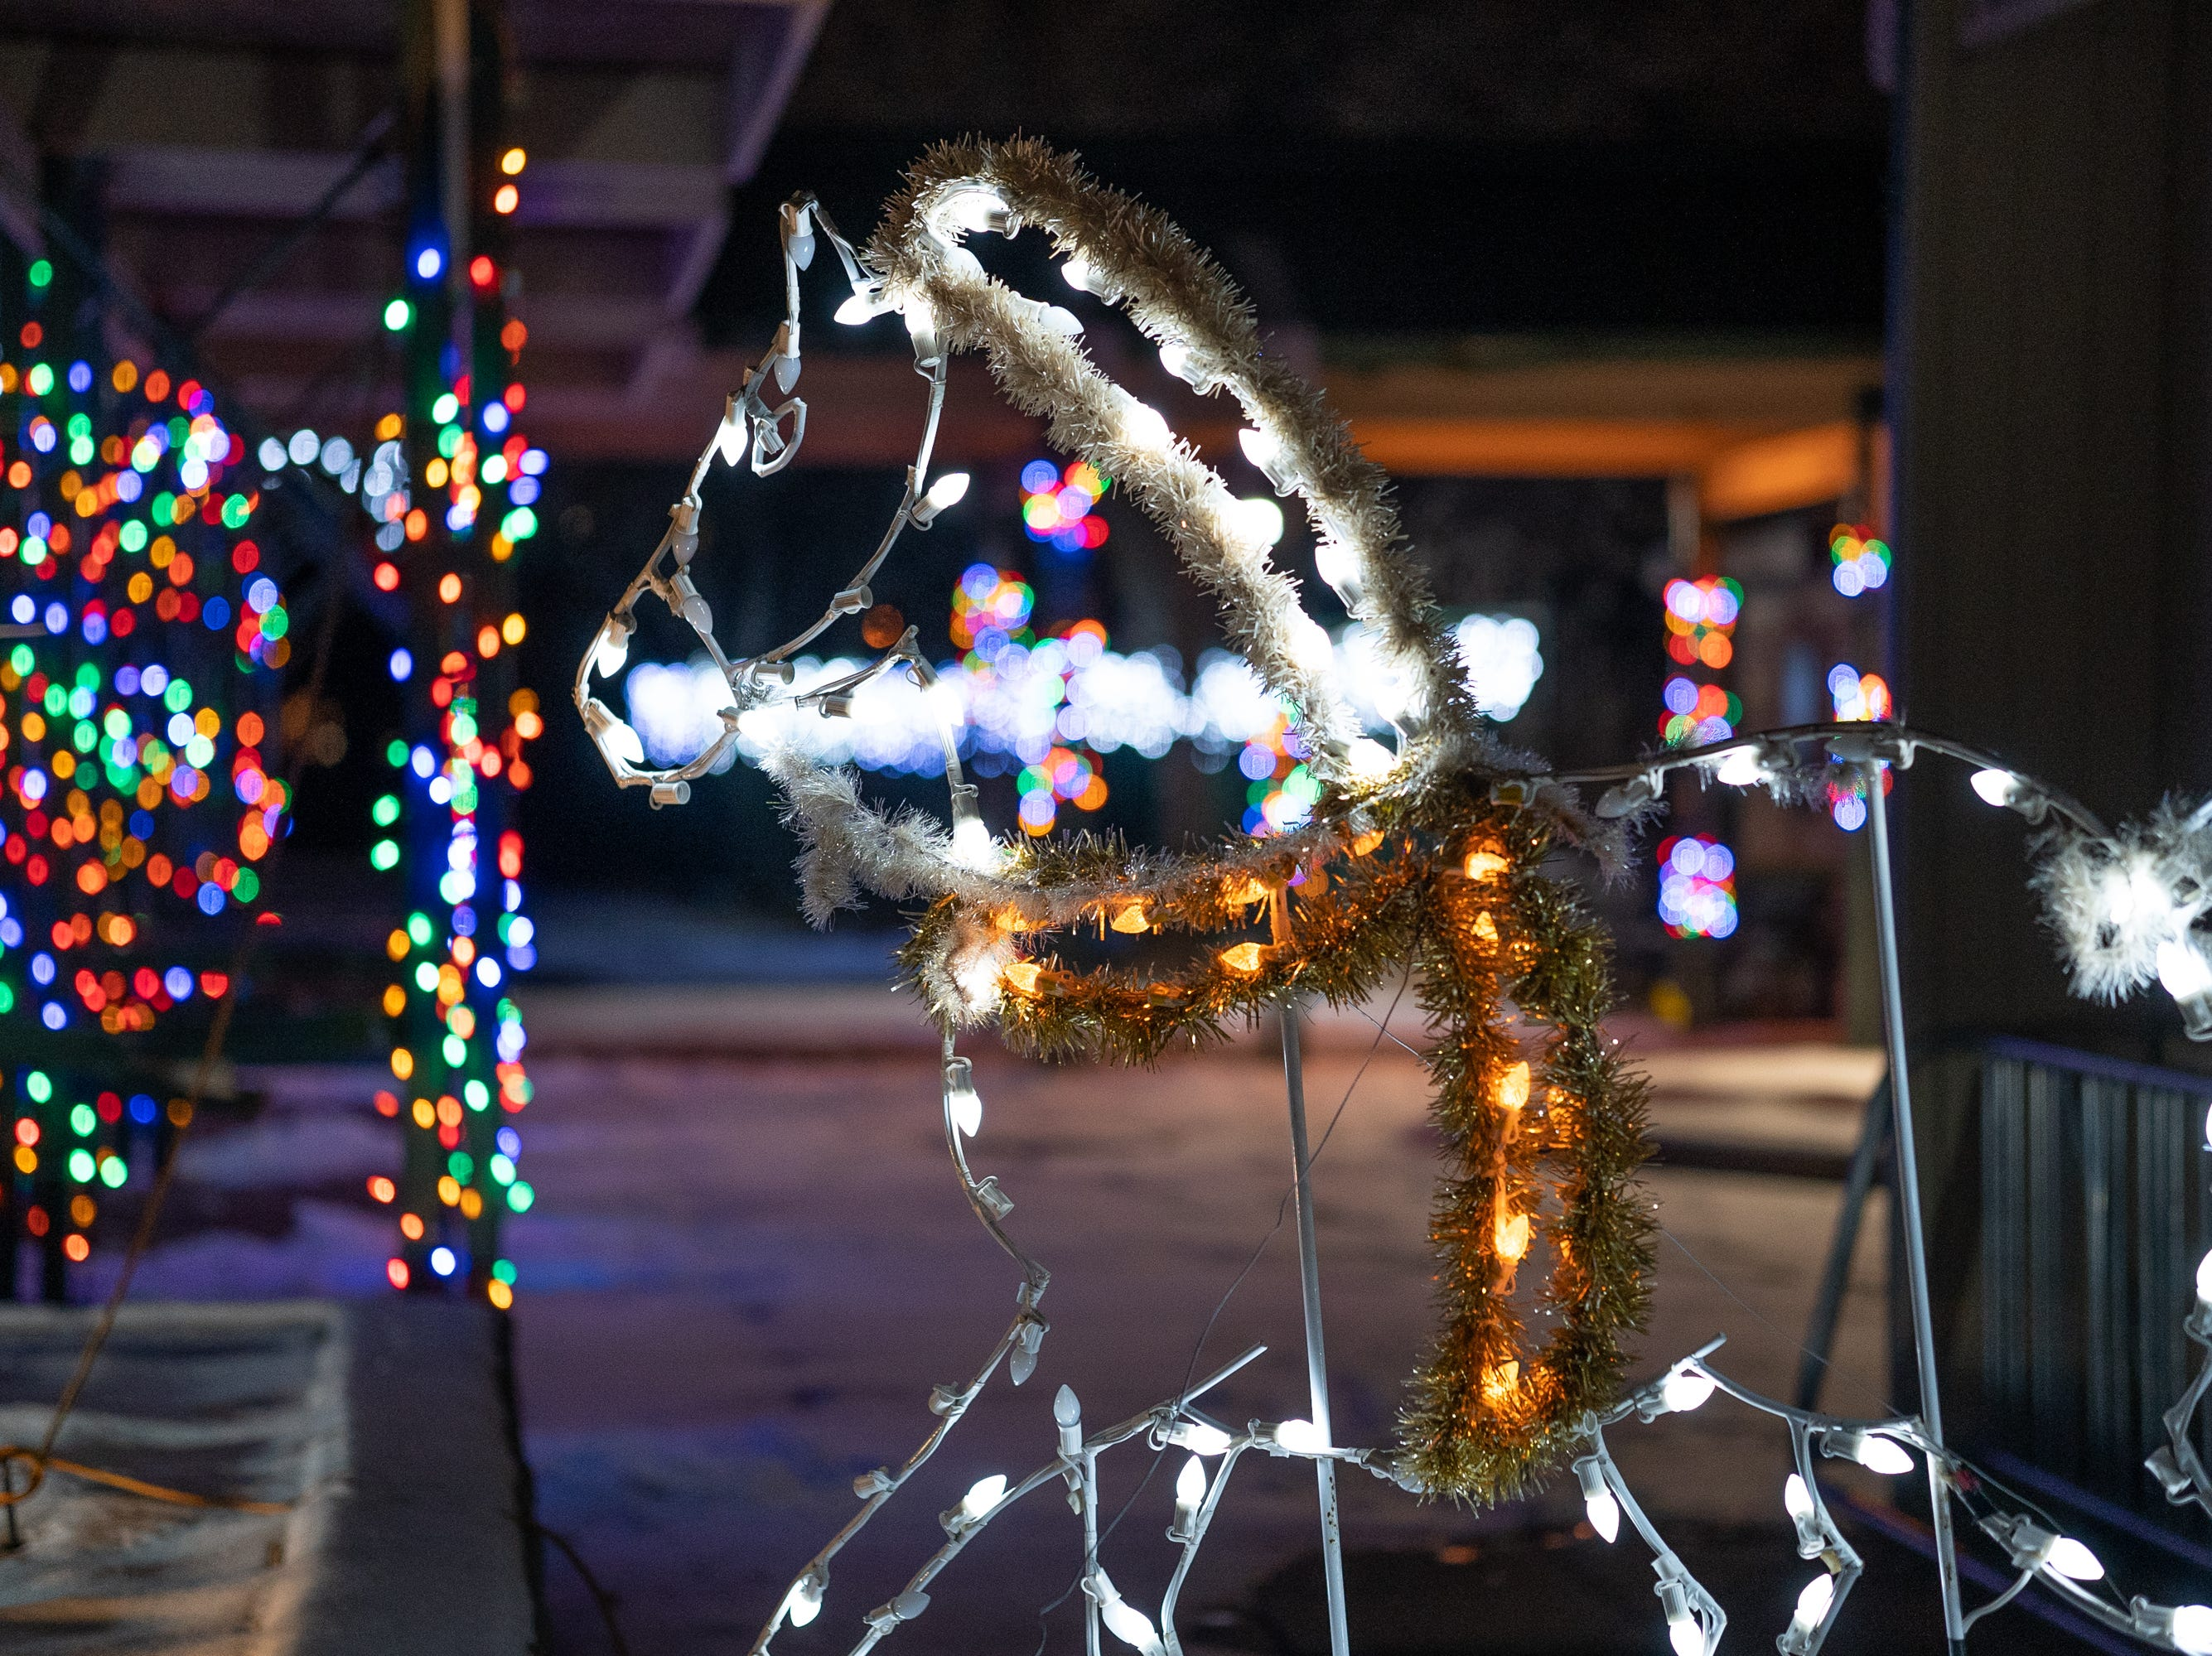 The 17th Annual Celebration of Lights is being held each night until Dec. 31 in Menominee Park in Oshkosh.